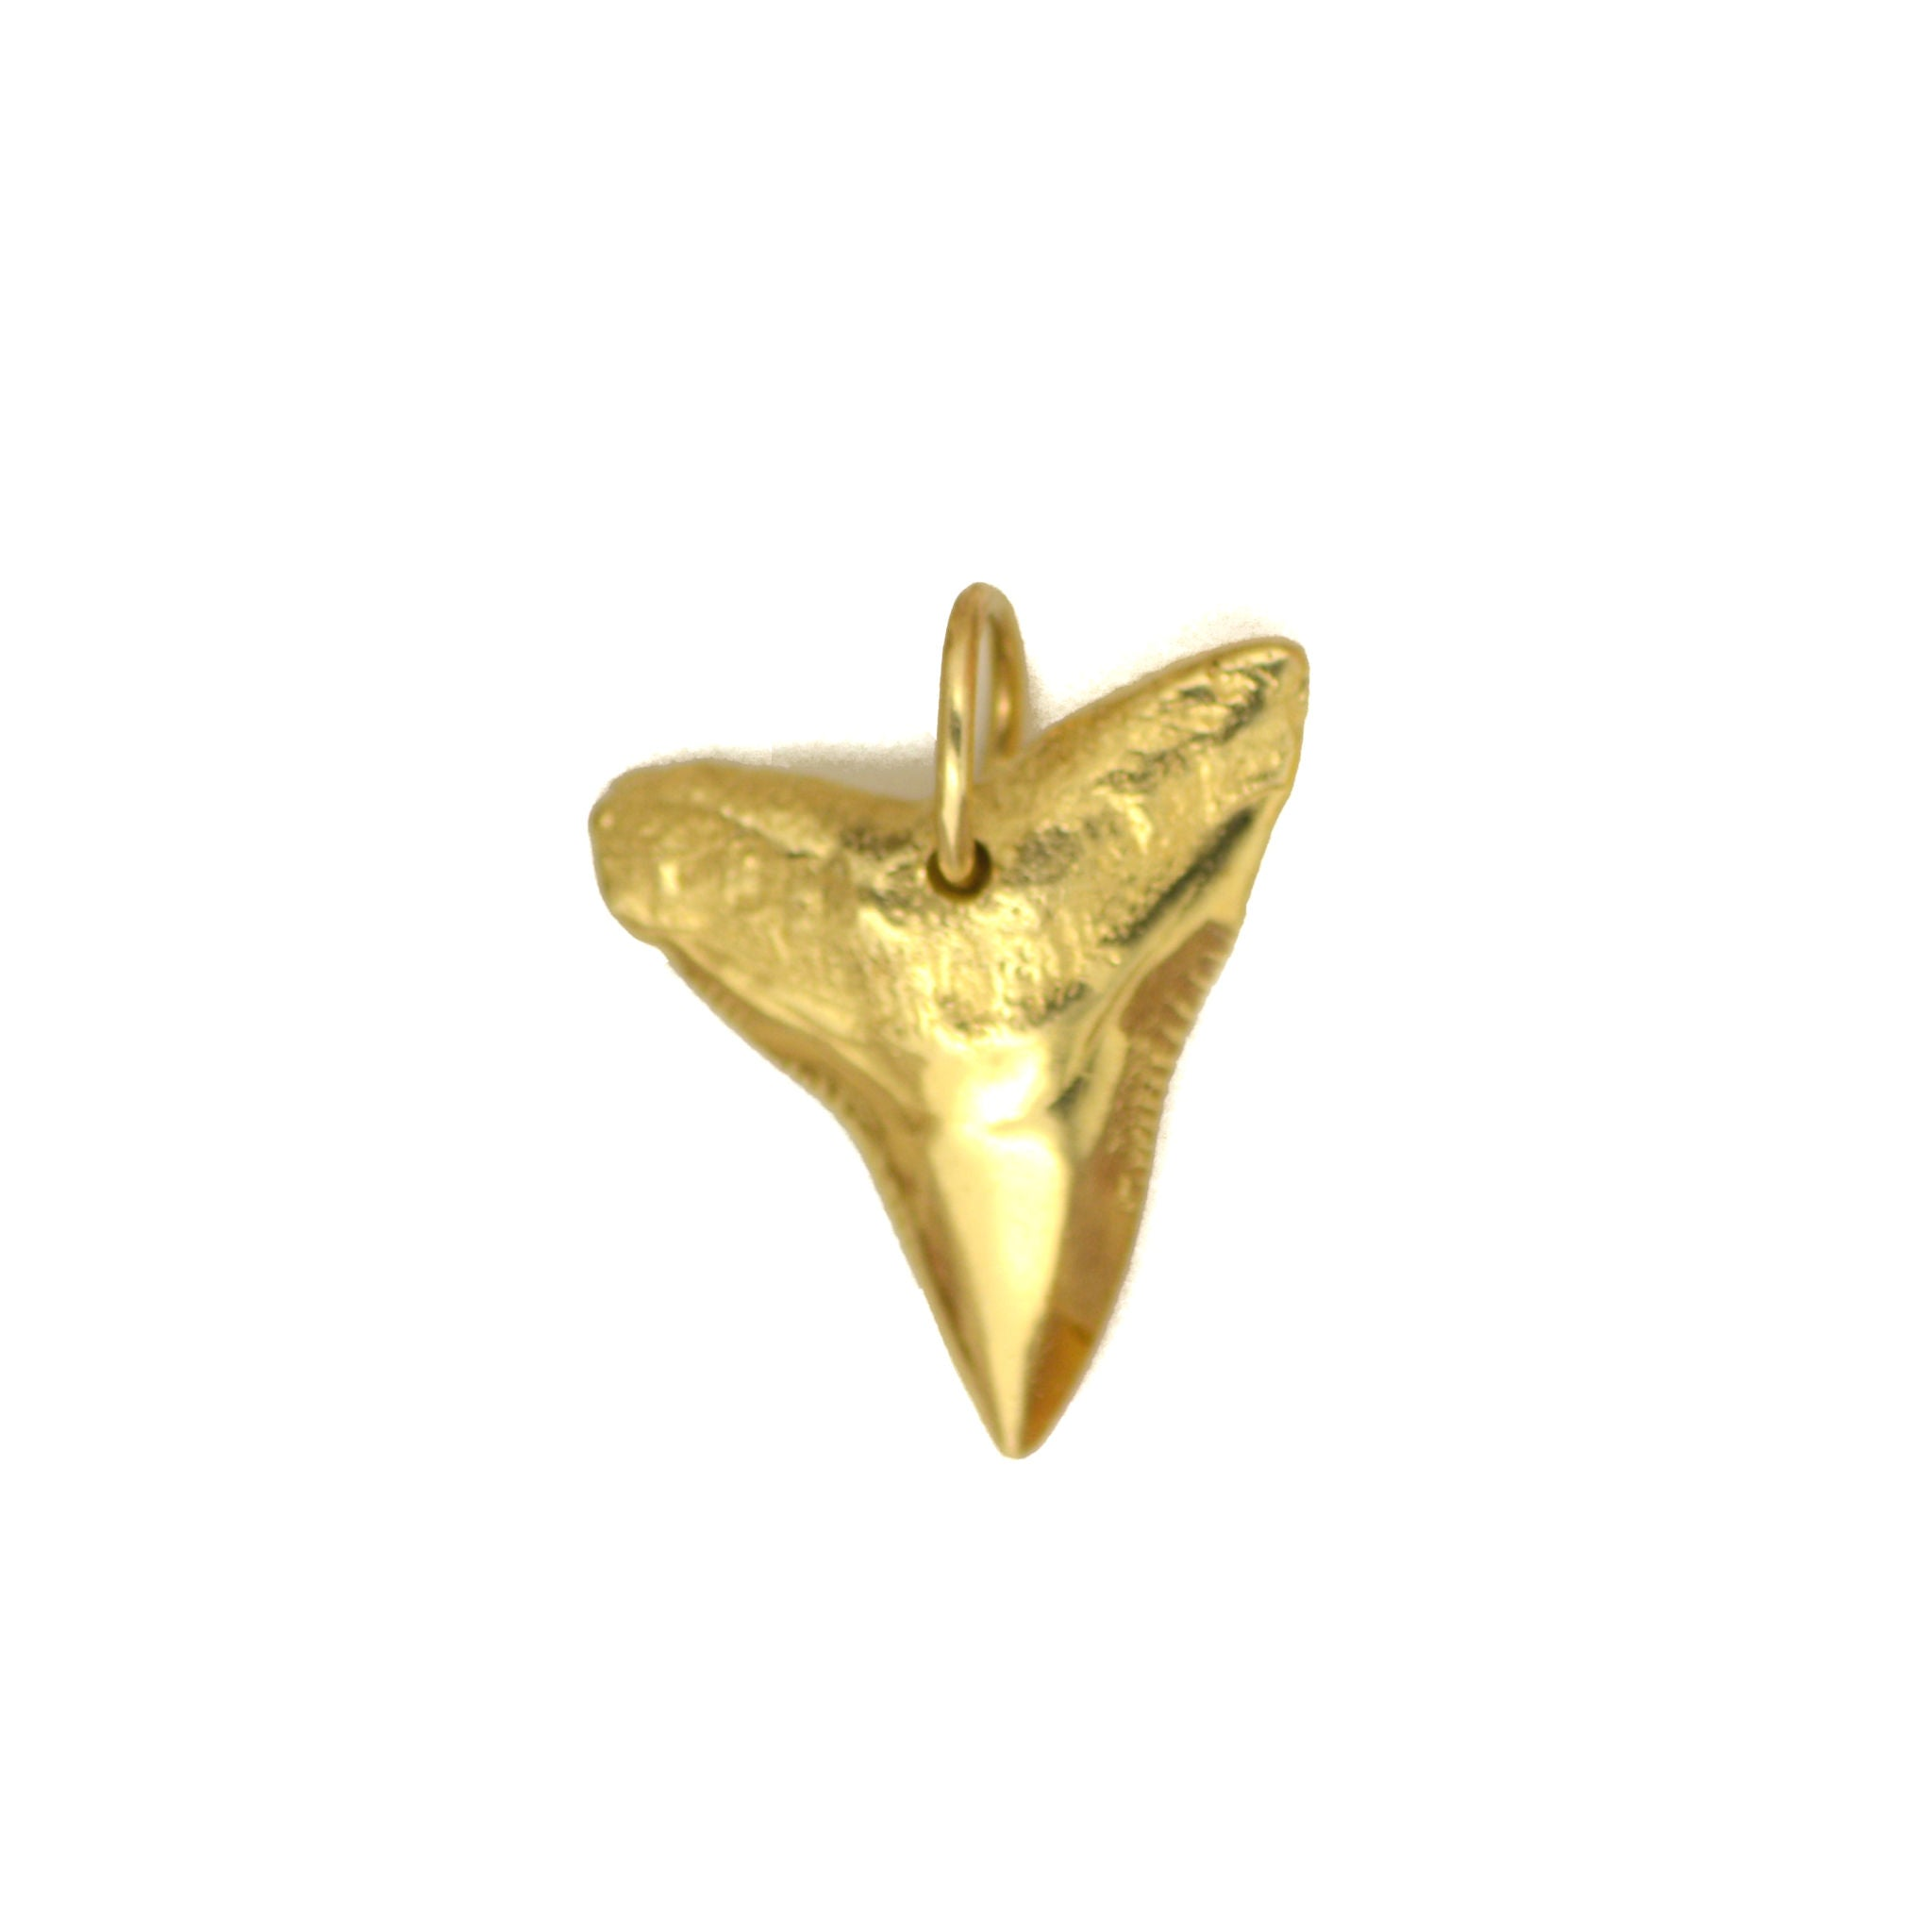 14K Gold Sharks Tooth 4.4g